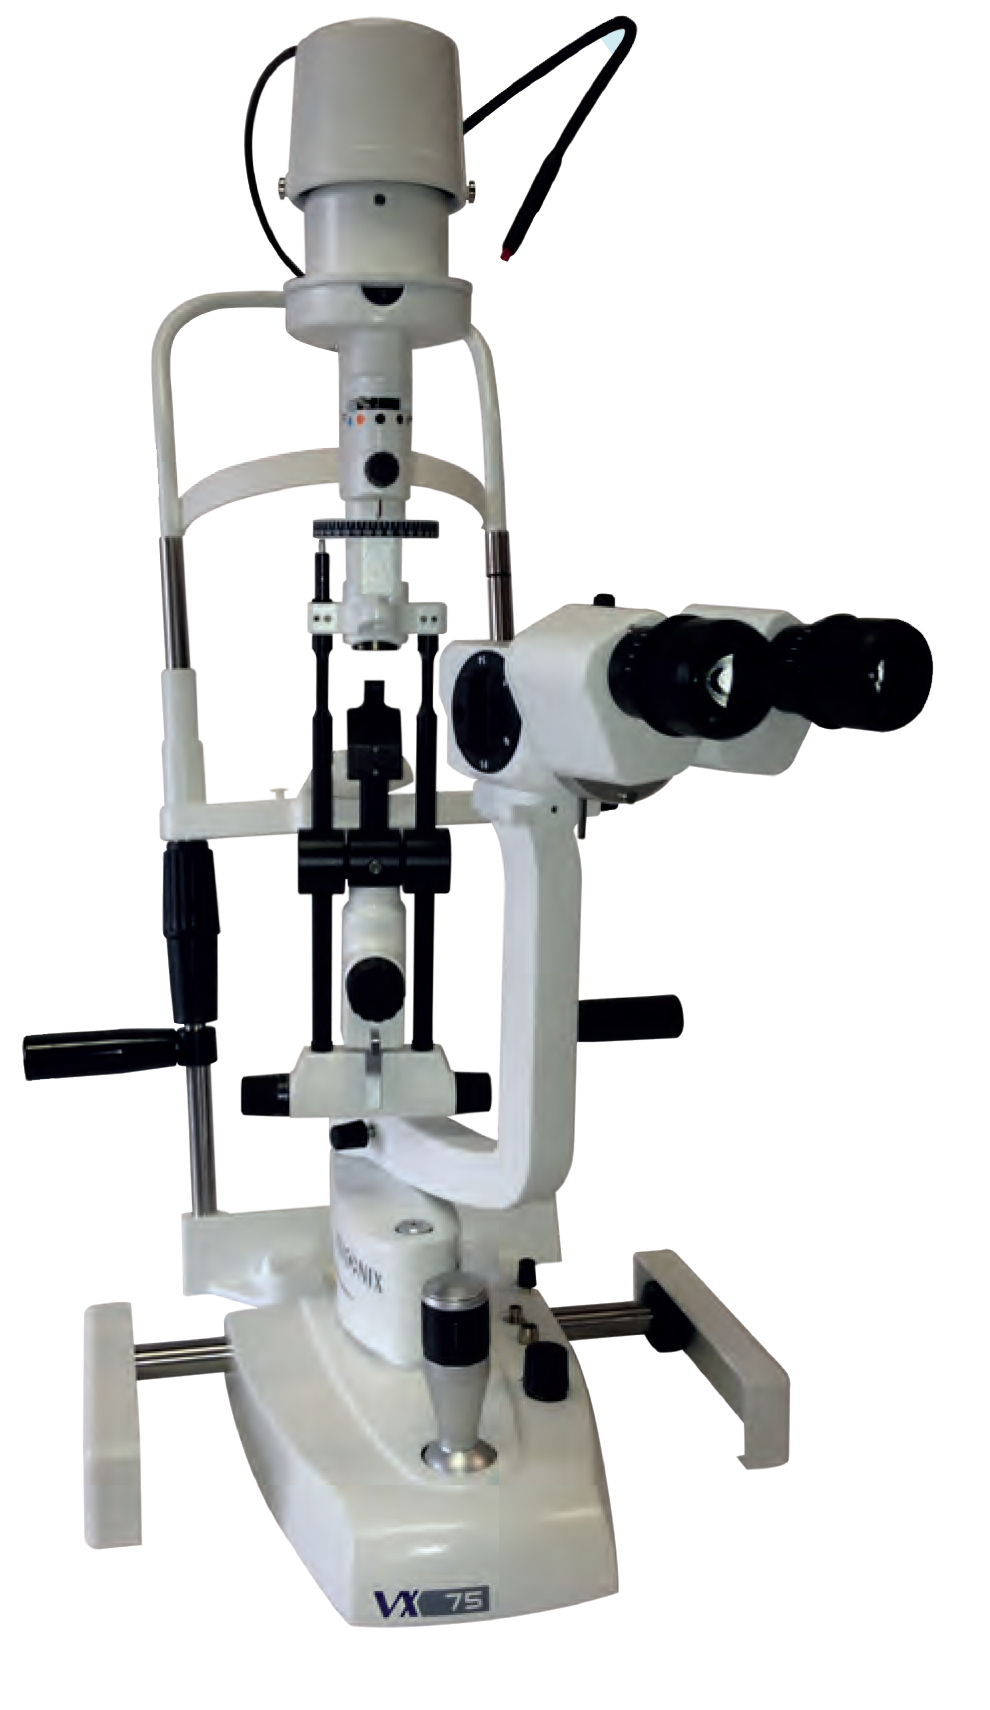 VX75 Examination Slit Lamp